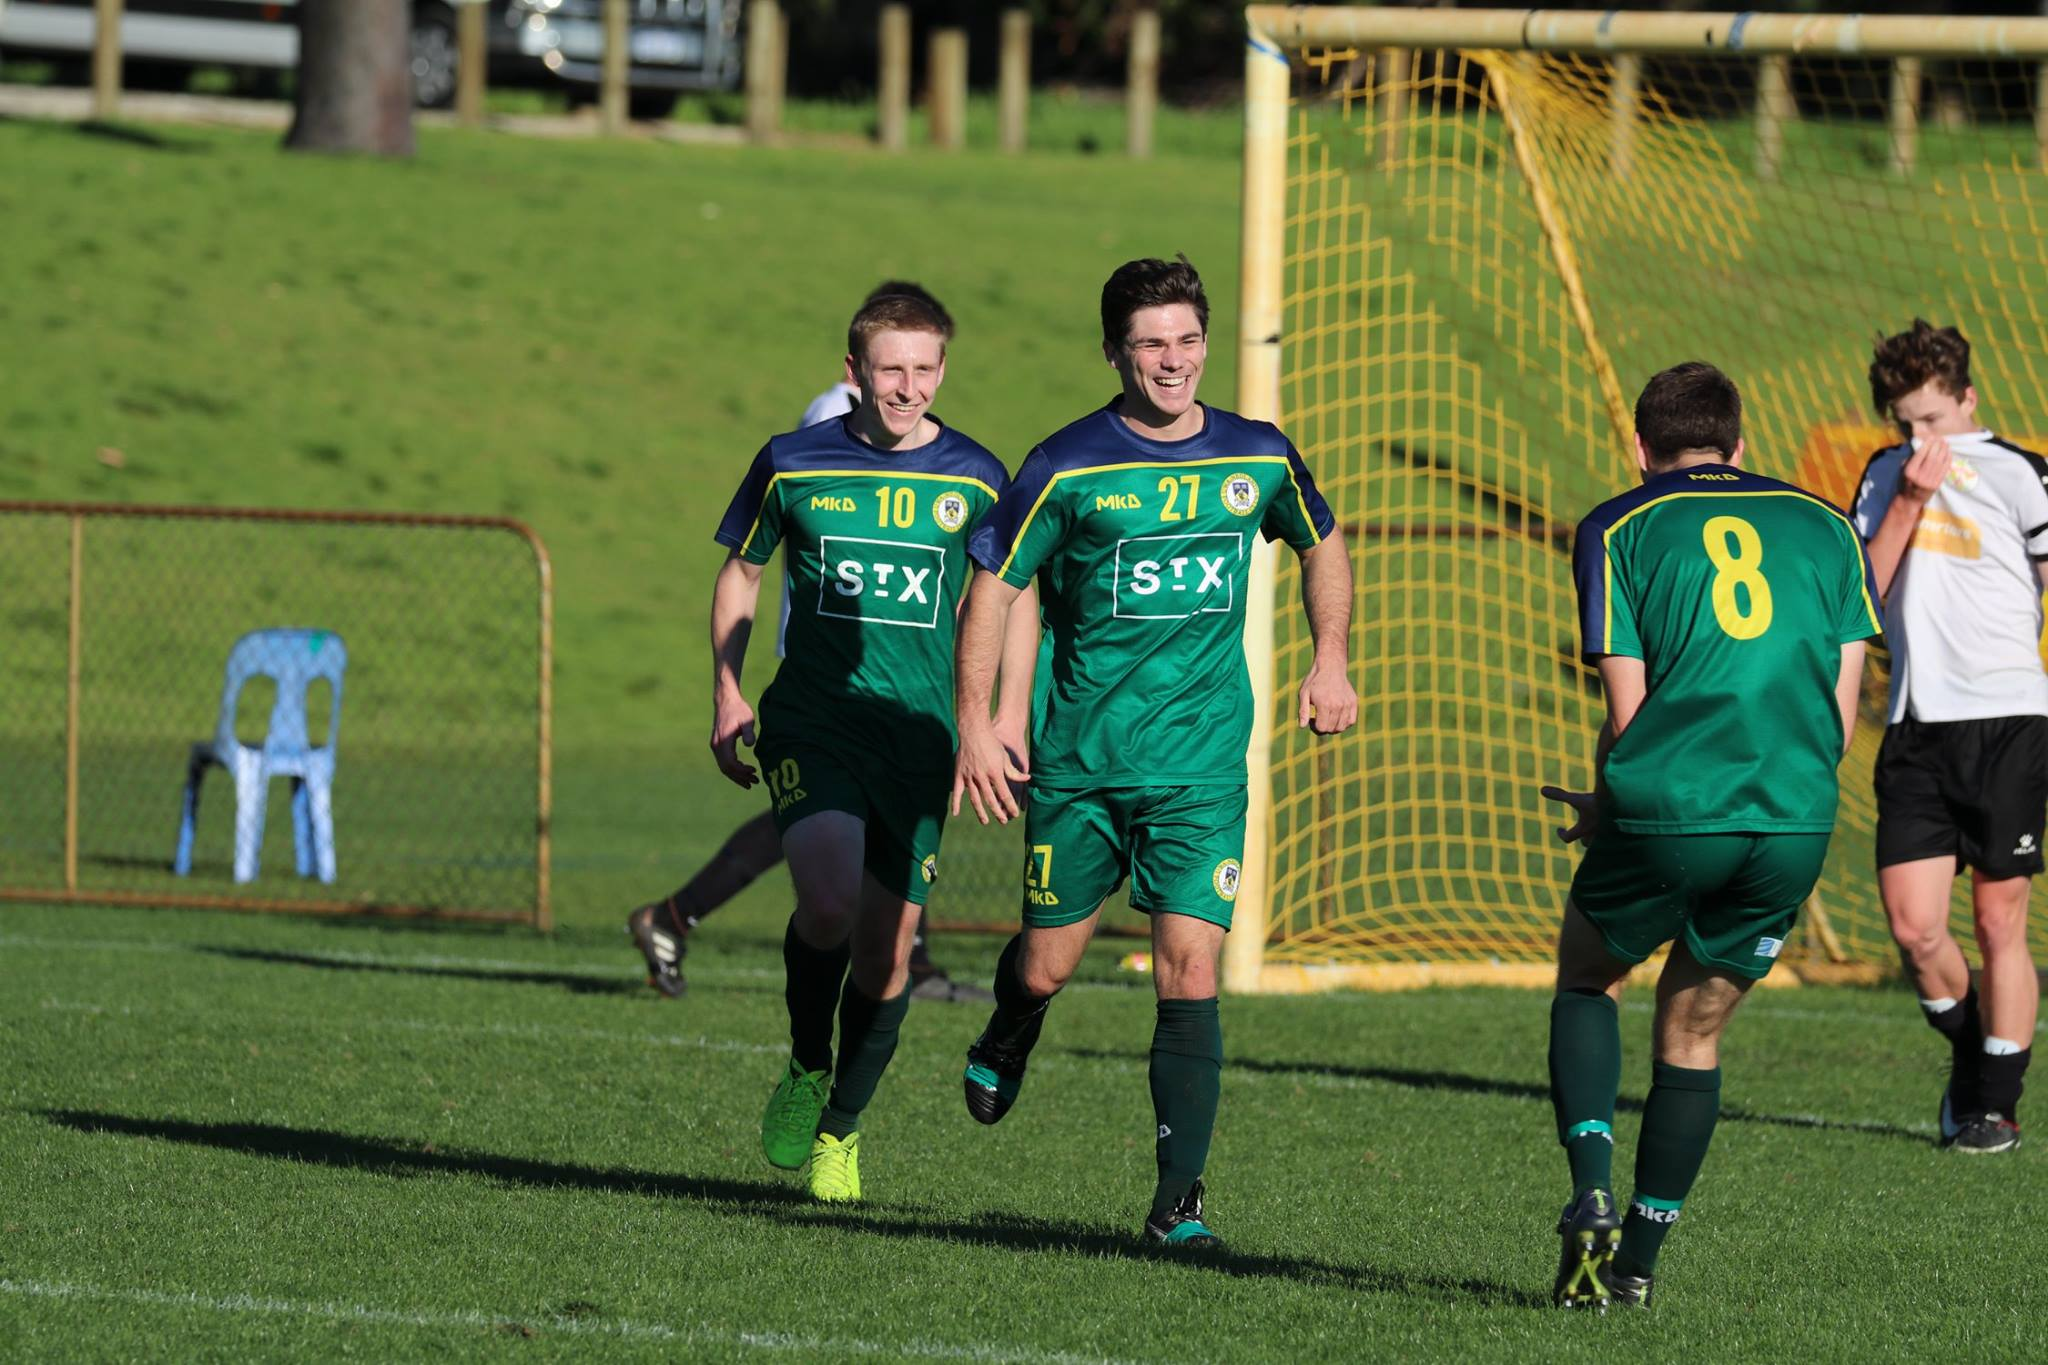 WELTON CELEBRATES HIS FIRST GOAL FOR THE CLUB - CREDIT: GABRIELE MALUGA